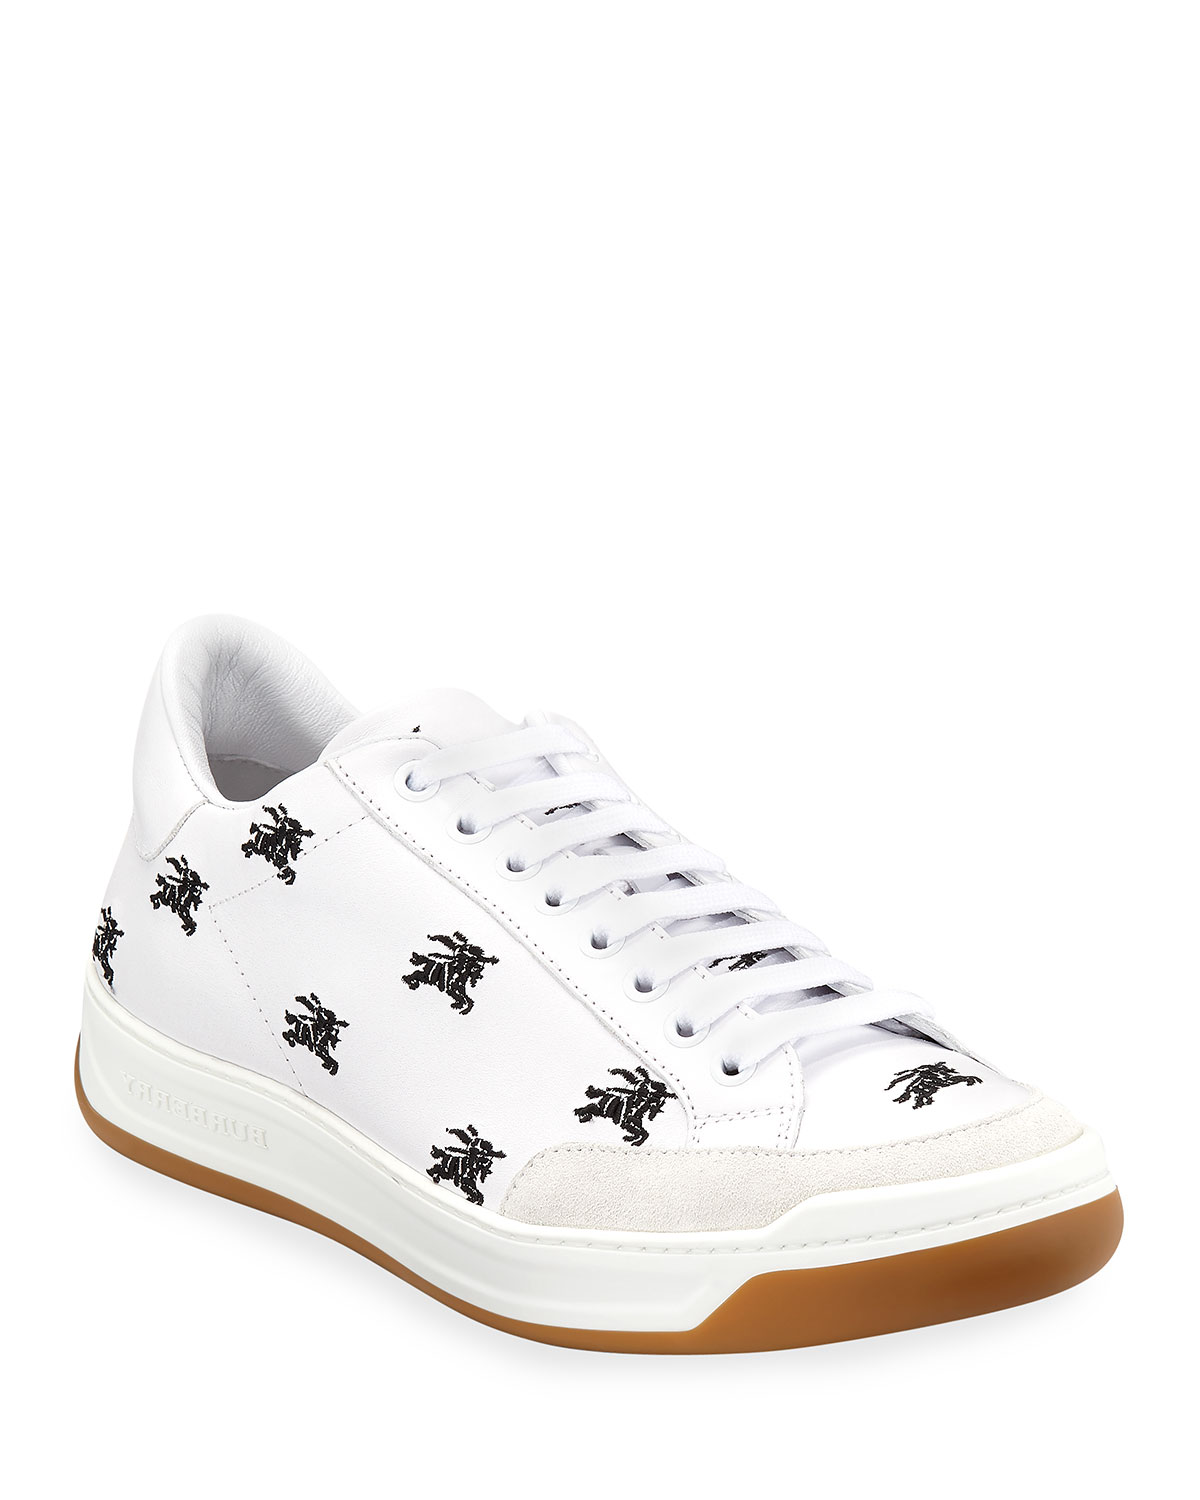 Men's Equestrian Knight Logo Leather Low-Top Sneakers